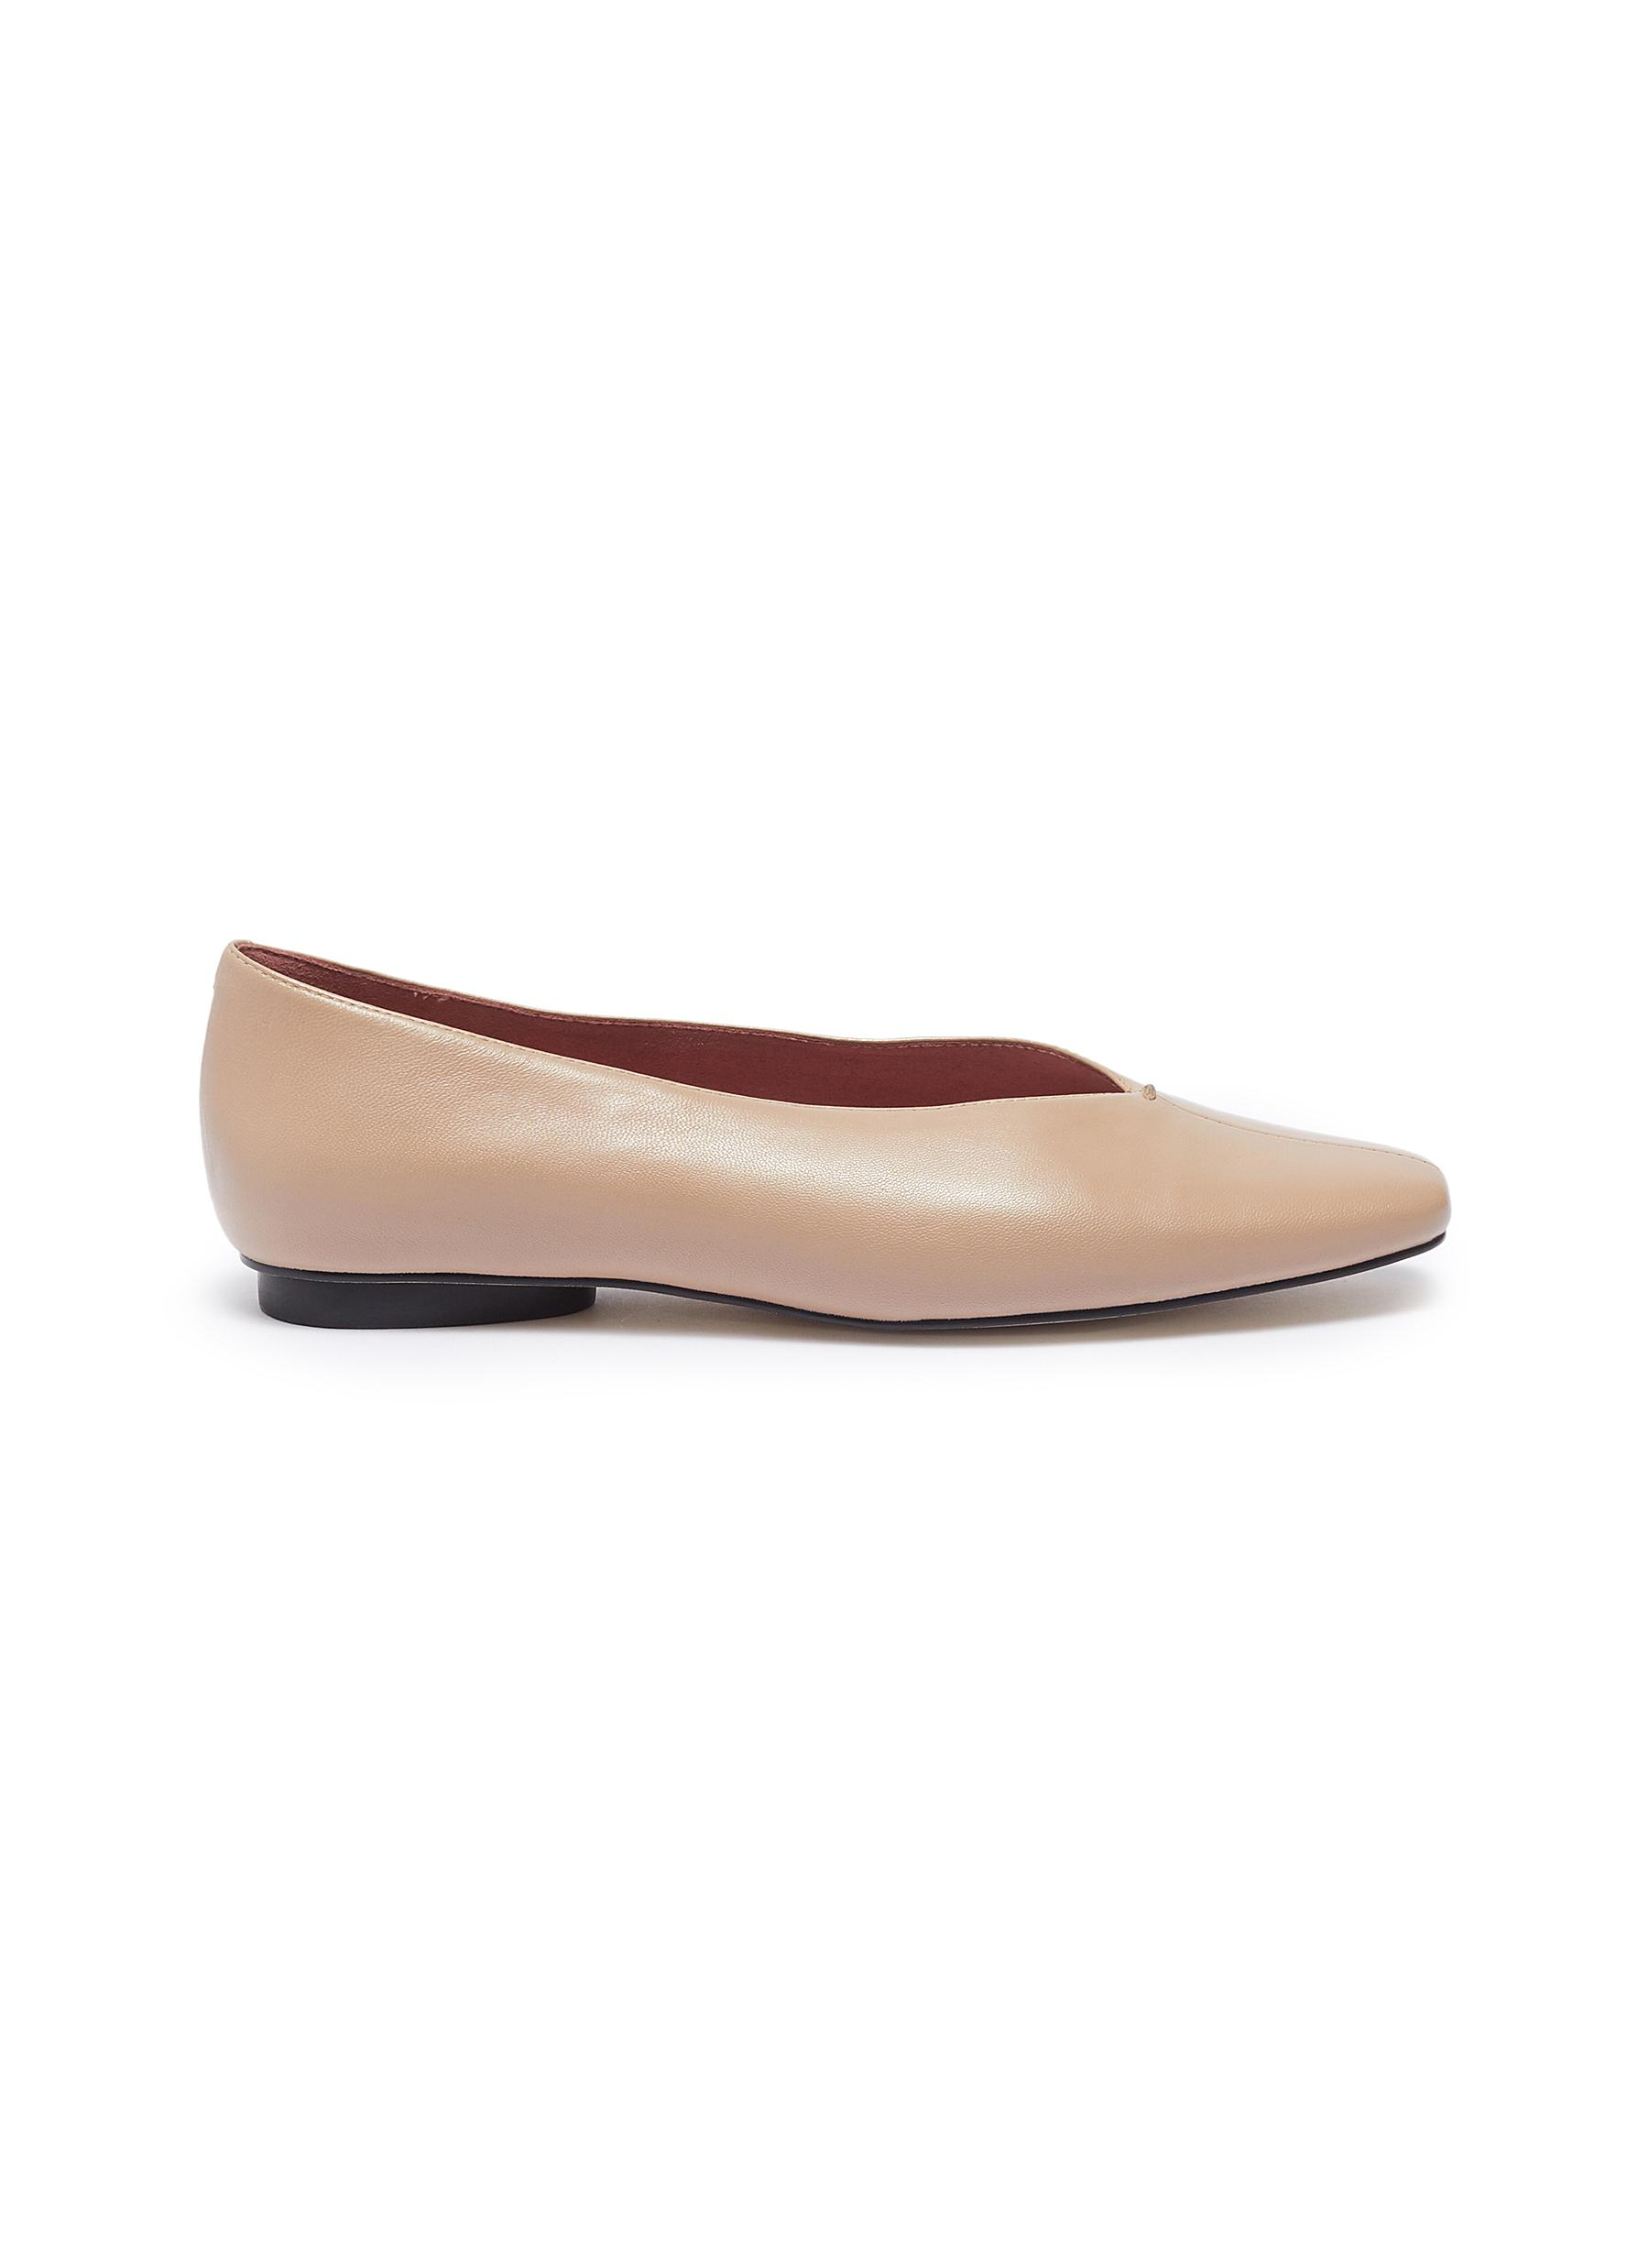 Abe choked-up leather flats by Pedder Red